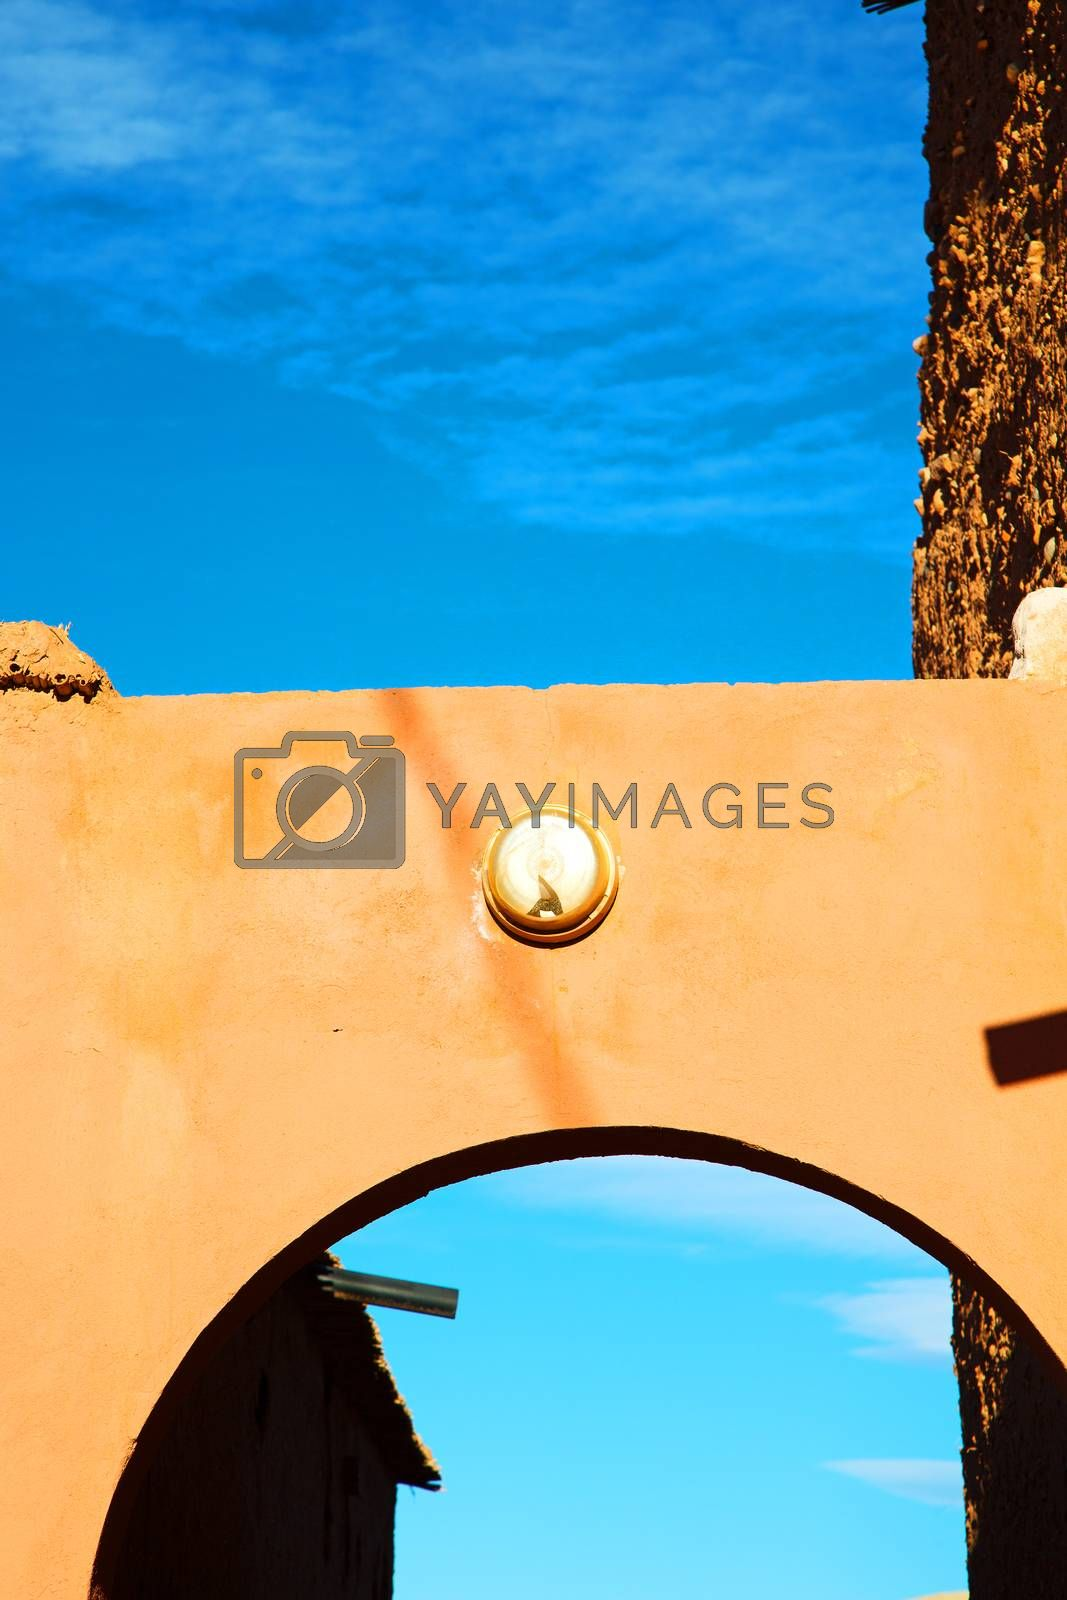 Royalty free image of moroccan old wall and   antique city by lkpro